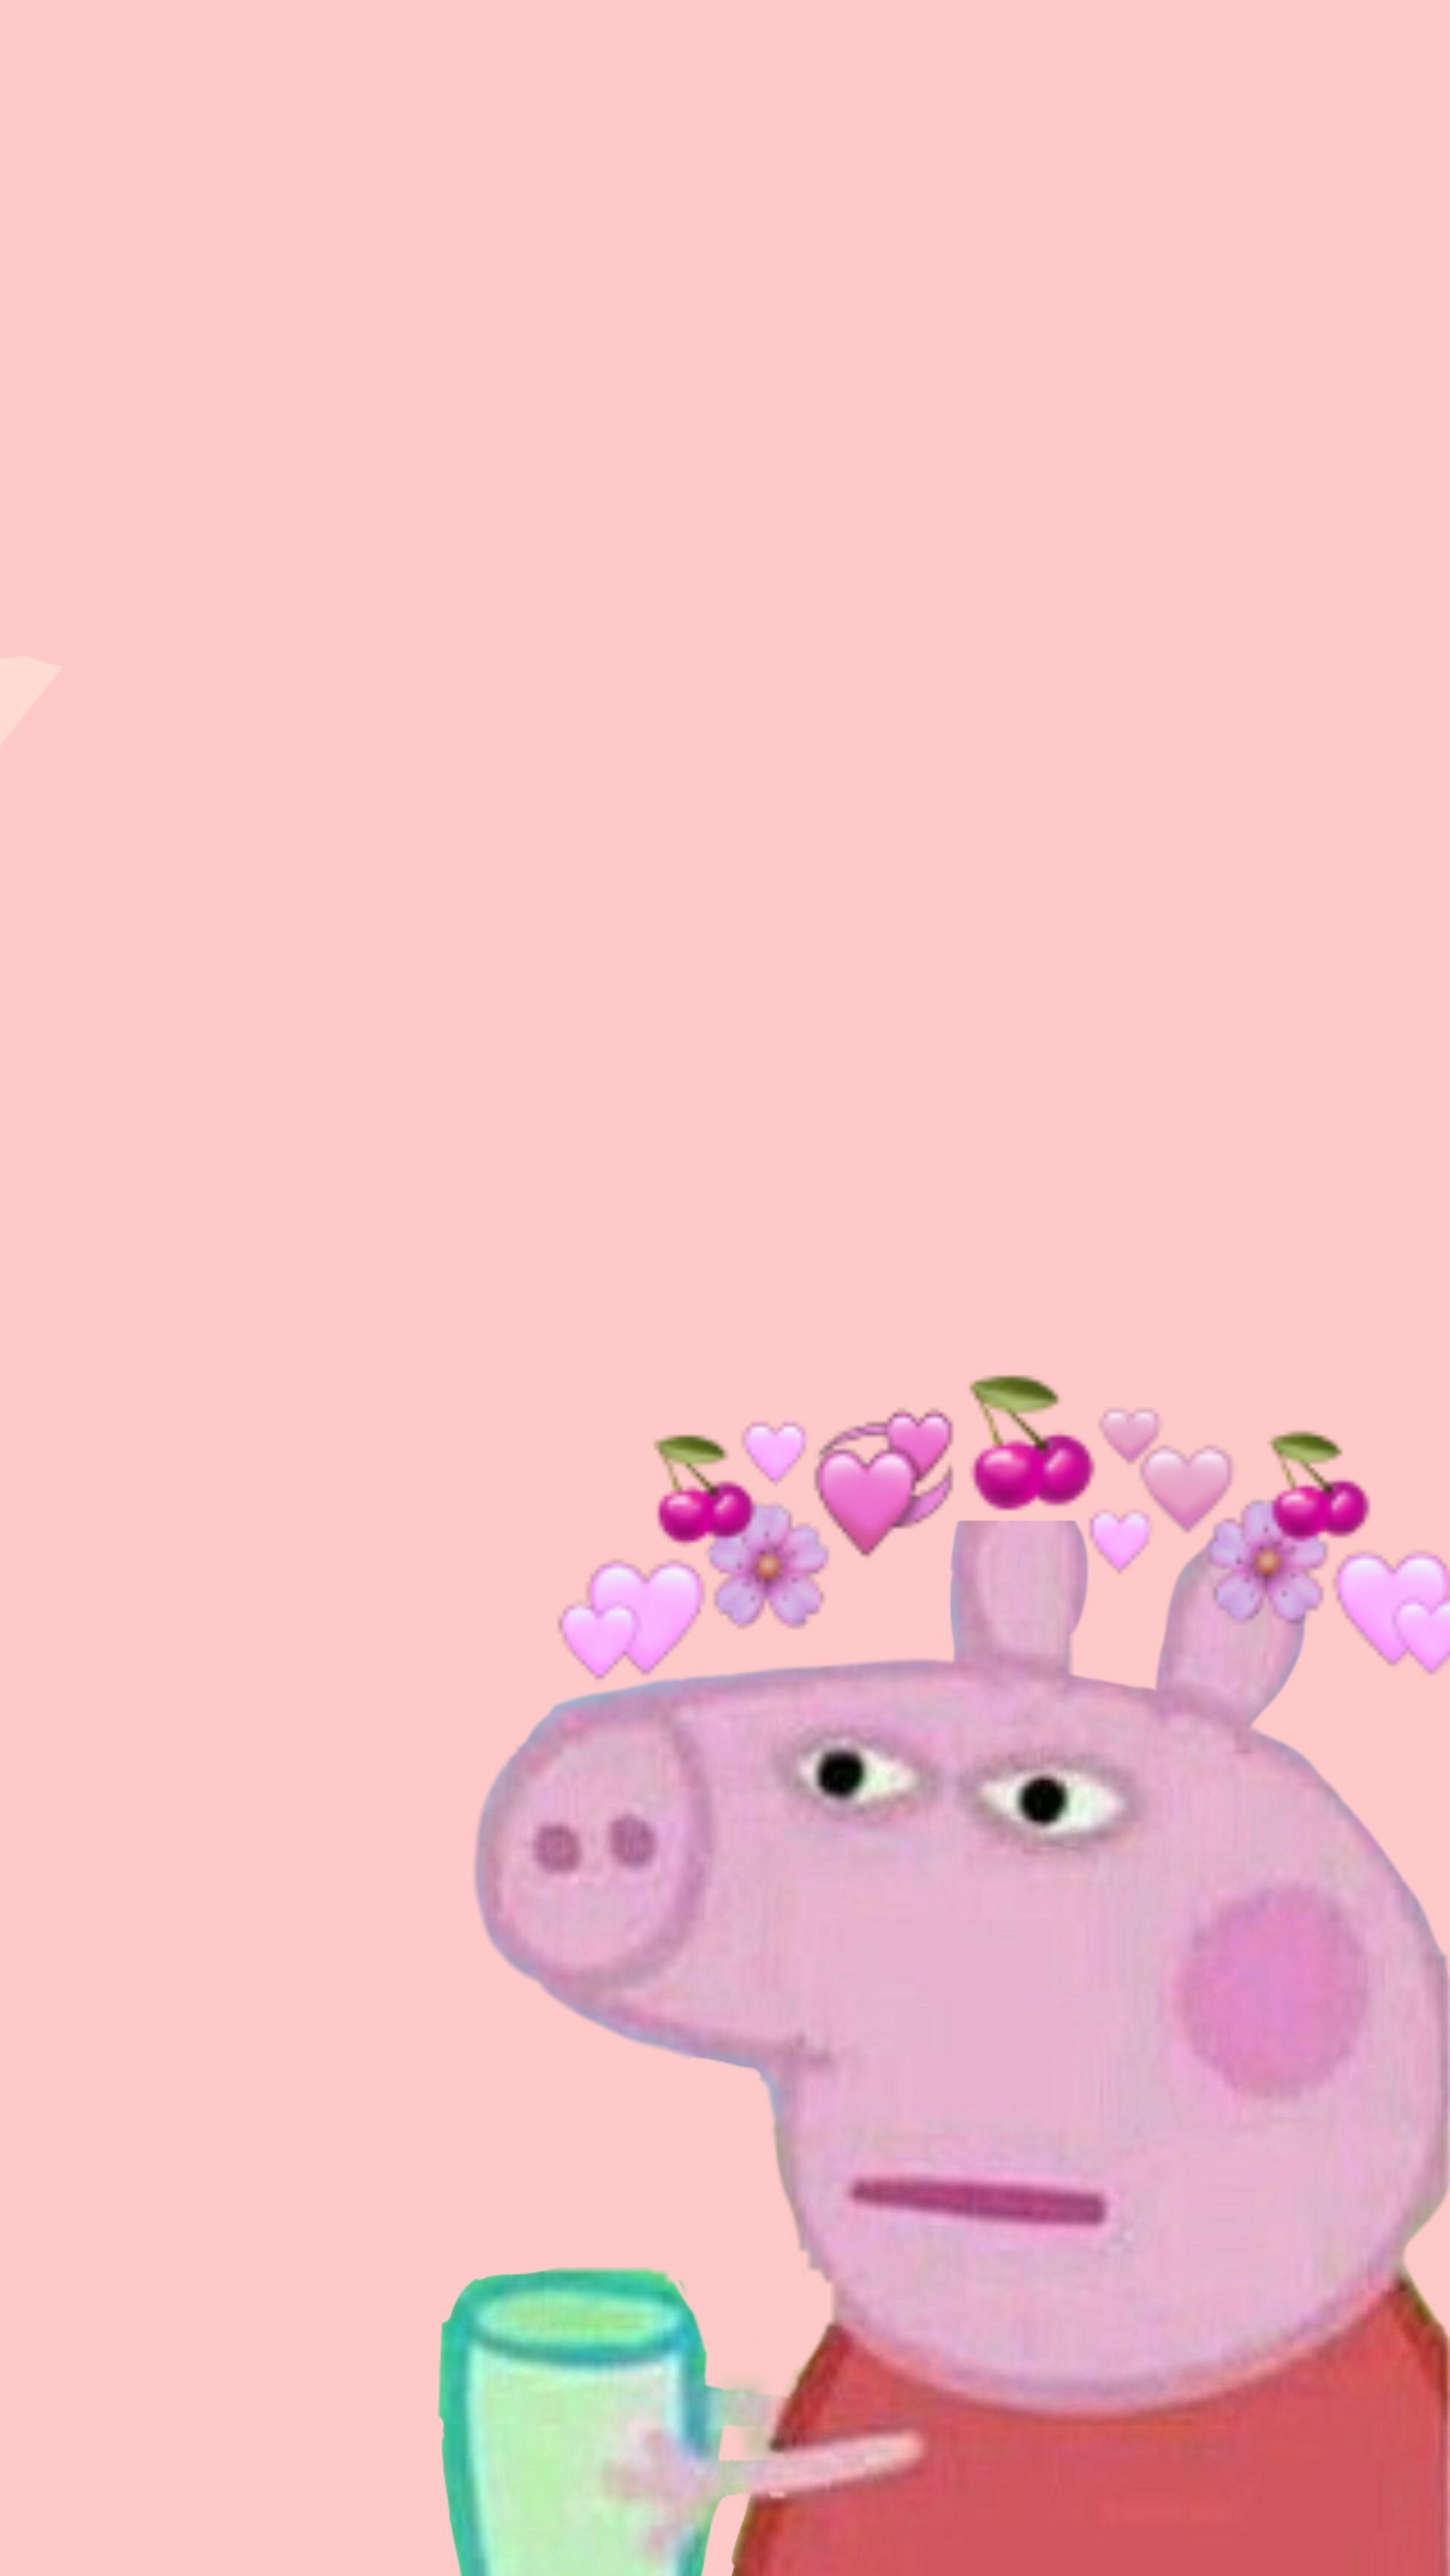 peppapig peppapig peppapig Funny iphone wallpaper